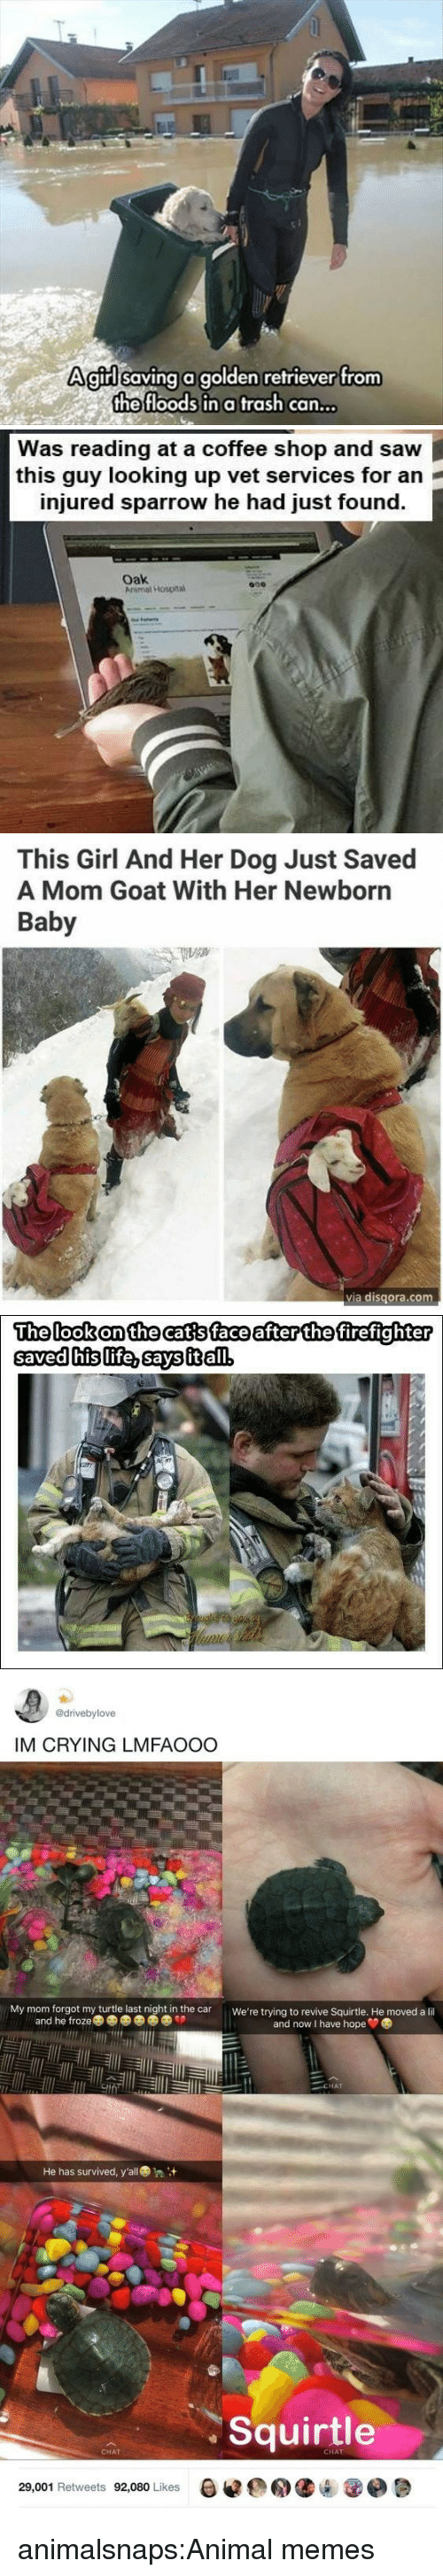 Crying, Memes, and Saw: Agirllsaving a golden refriever trom  the floods in a trash can...   Was reading at a coffee shop and saw  this guy looking up vet services for an  injured sparrow he had just found.  oak  Arimal Hospna   This Girl And Her Dog Just Saved  A Mom Goat With Her Newborn  Baby  via disqora.com   The lookonthecatsface after the firefighter  savedhislife.savsitłal   @drivebylove  IM CRYING LMFAOOO  My mom forgot my turtle last night in the car  We're trying to revive Squirtle. He moved a lil  and he froze  and now I have hope  CHAT  He has survived, y'all  Squirtle  CHAT  CHAT  29,001 Retweets 92,080 Likes  0遽@用缱내 @e週 animalsnaps:Animal memes